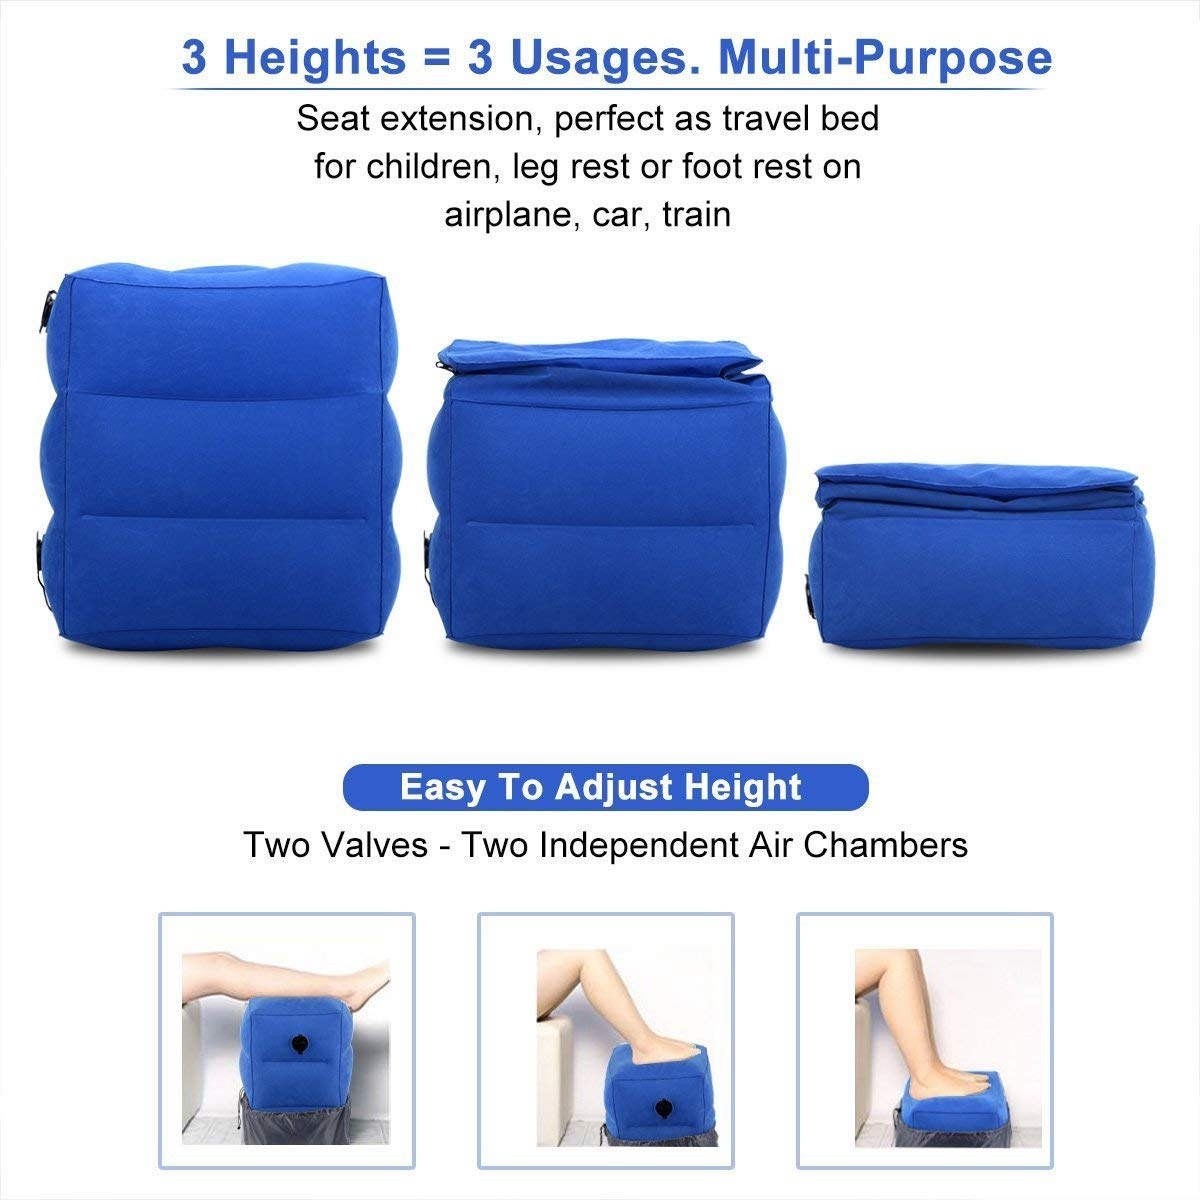 7d88d1036a2e NIUMI Inflatable Adjustable Height Travel Pillow for Leg/Foot Rest,  Airplane bed for kids to Lay Down or Sleep on Long-Haul Flight, Footrest  Suitable ...